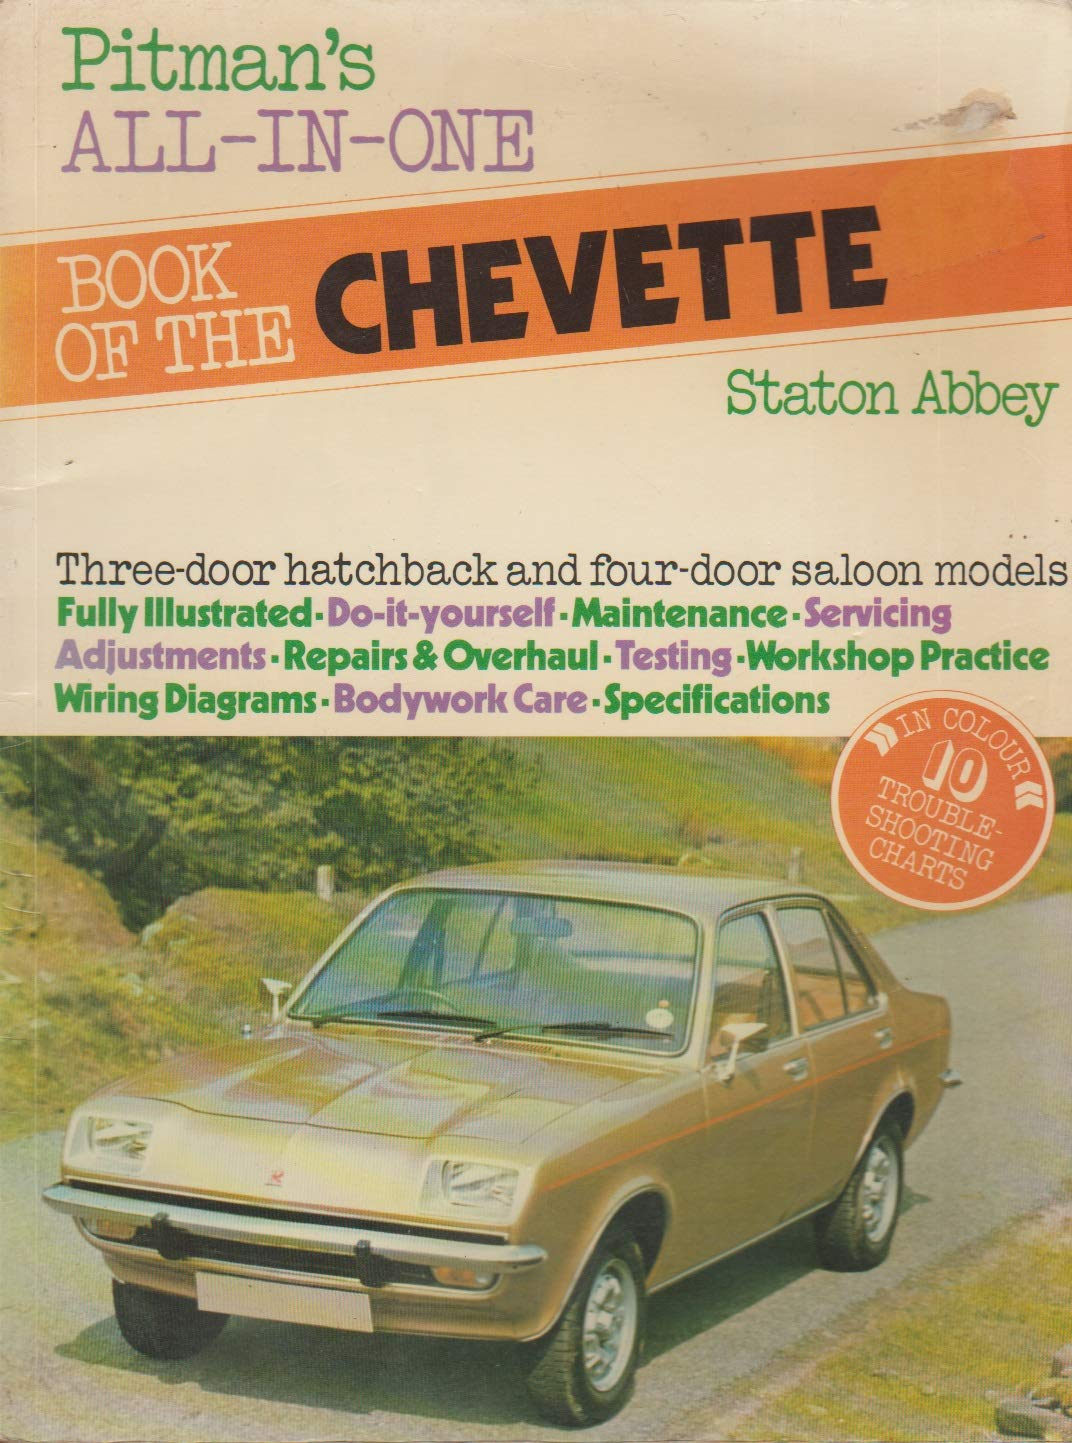 All-in-one Book of the Vauxhall Chevette: Staton Abbey ... on